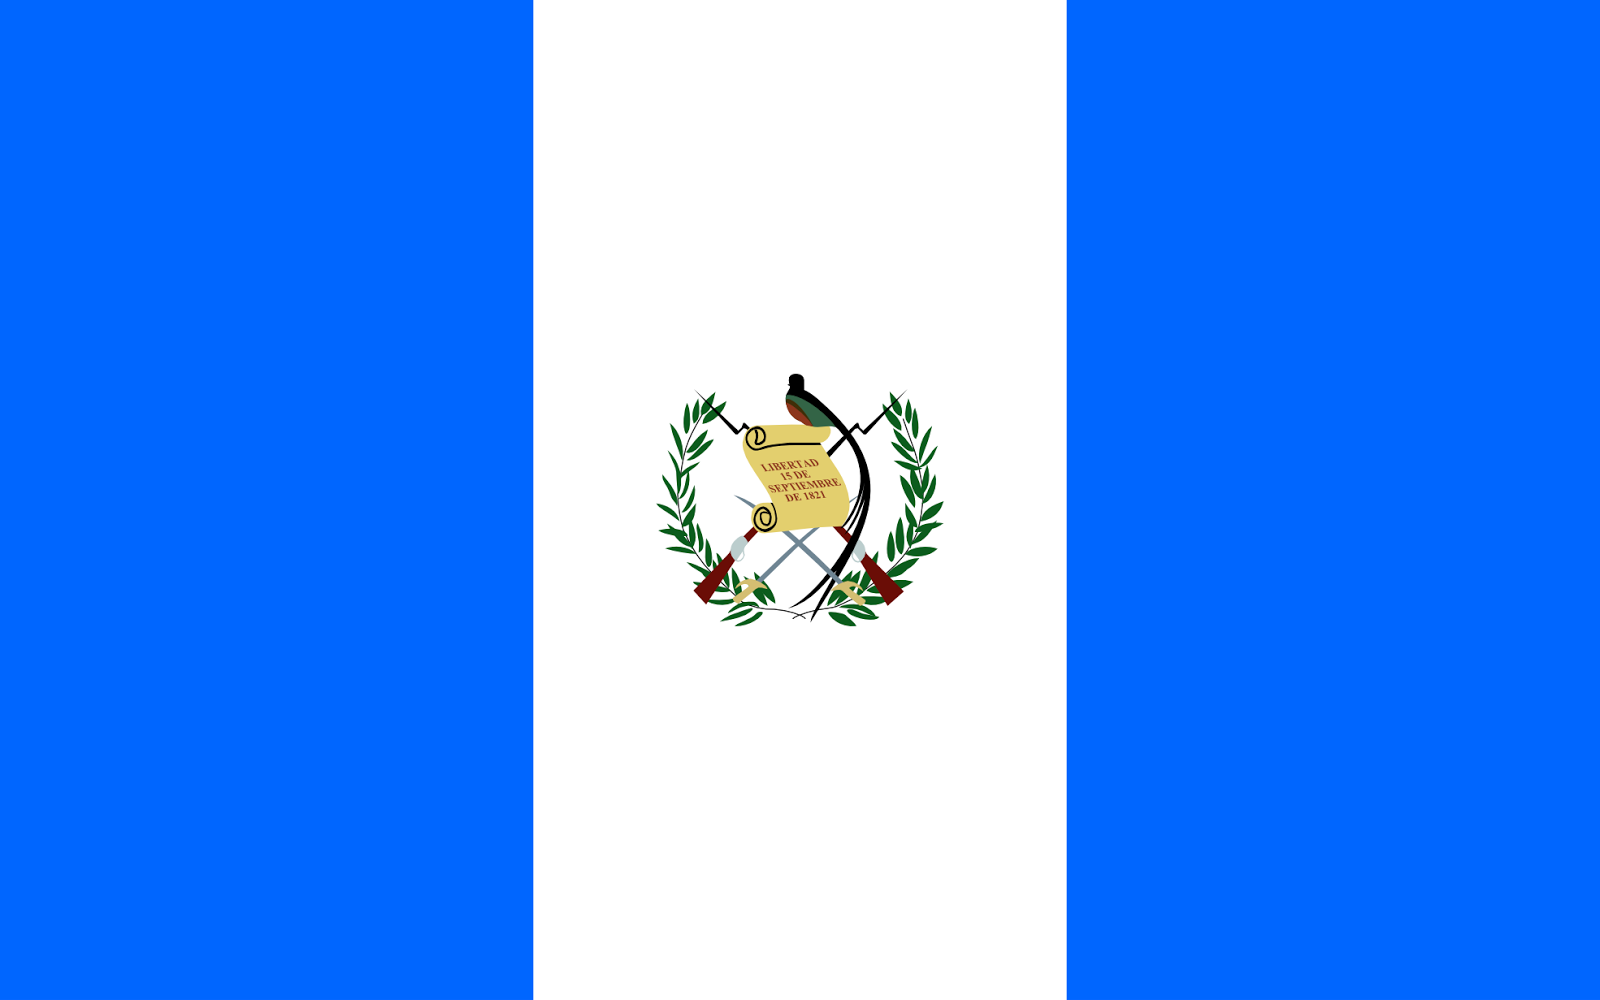 The Guatemala Quetzaltenango Mission